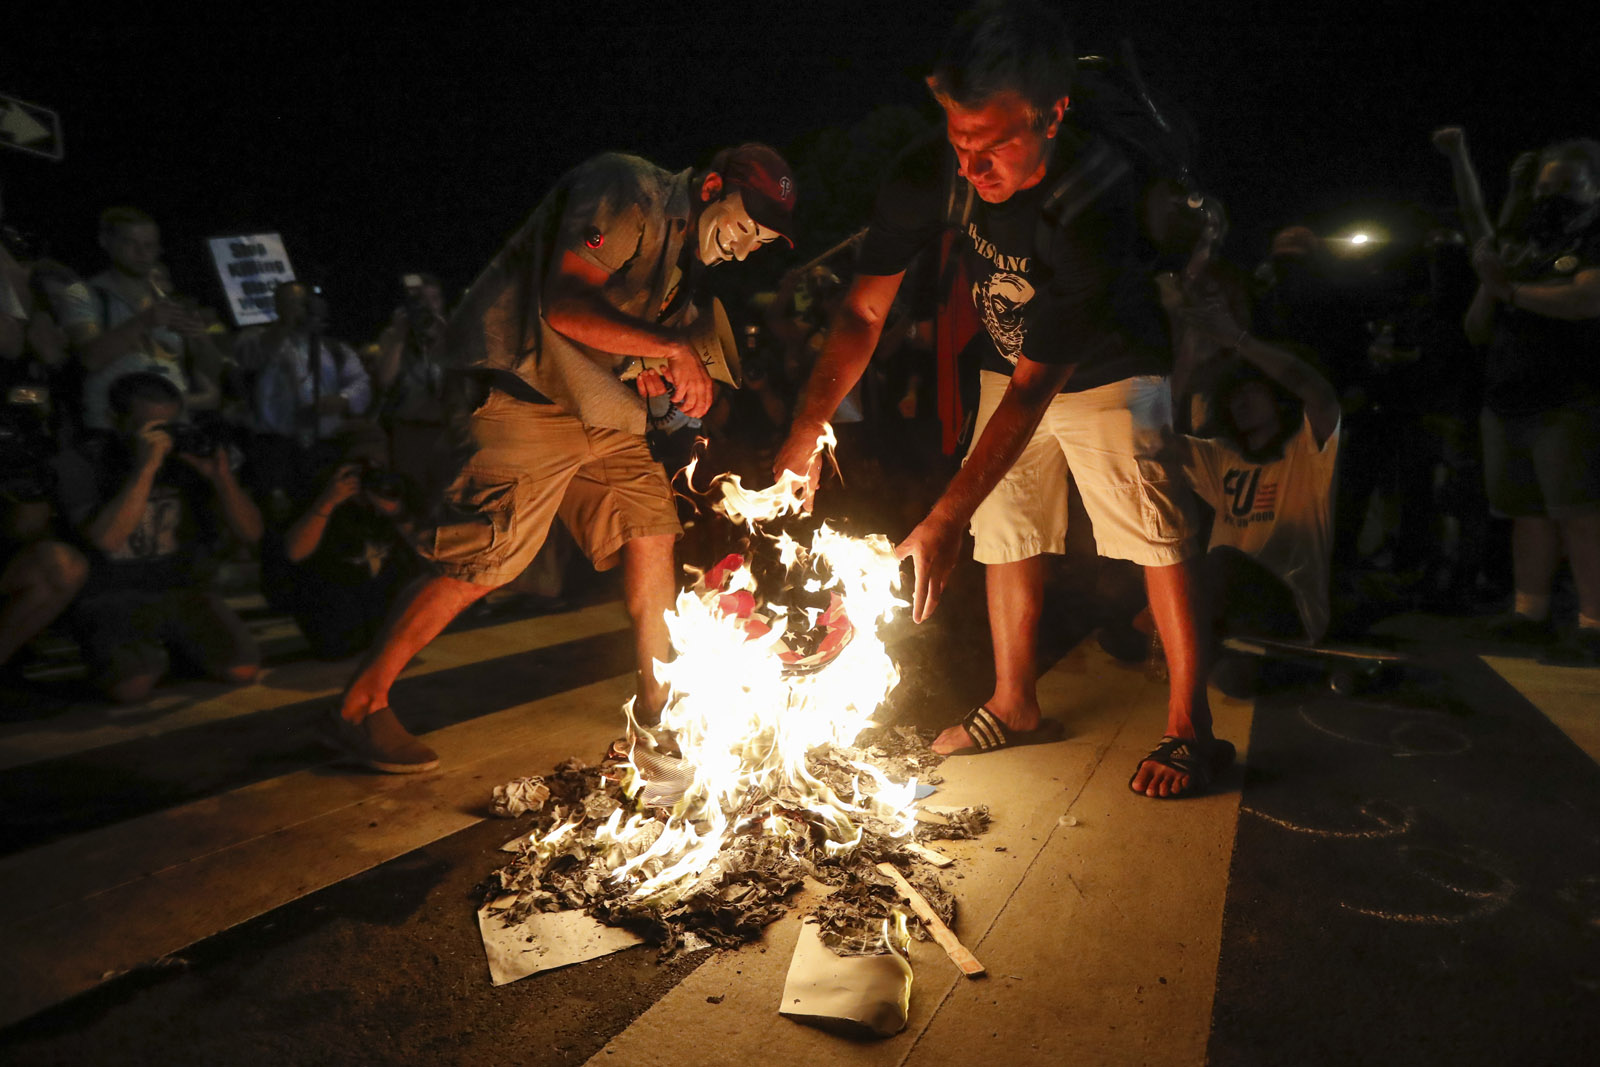 Demonstrators burn an American flag during a protest in Philadelphia, Tuesday, July 26, 2016, during the second day of the Democratic National Convention. (AP Photo/John Minchillo)